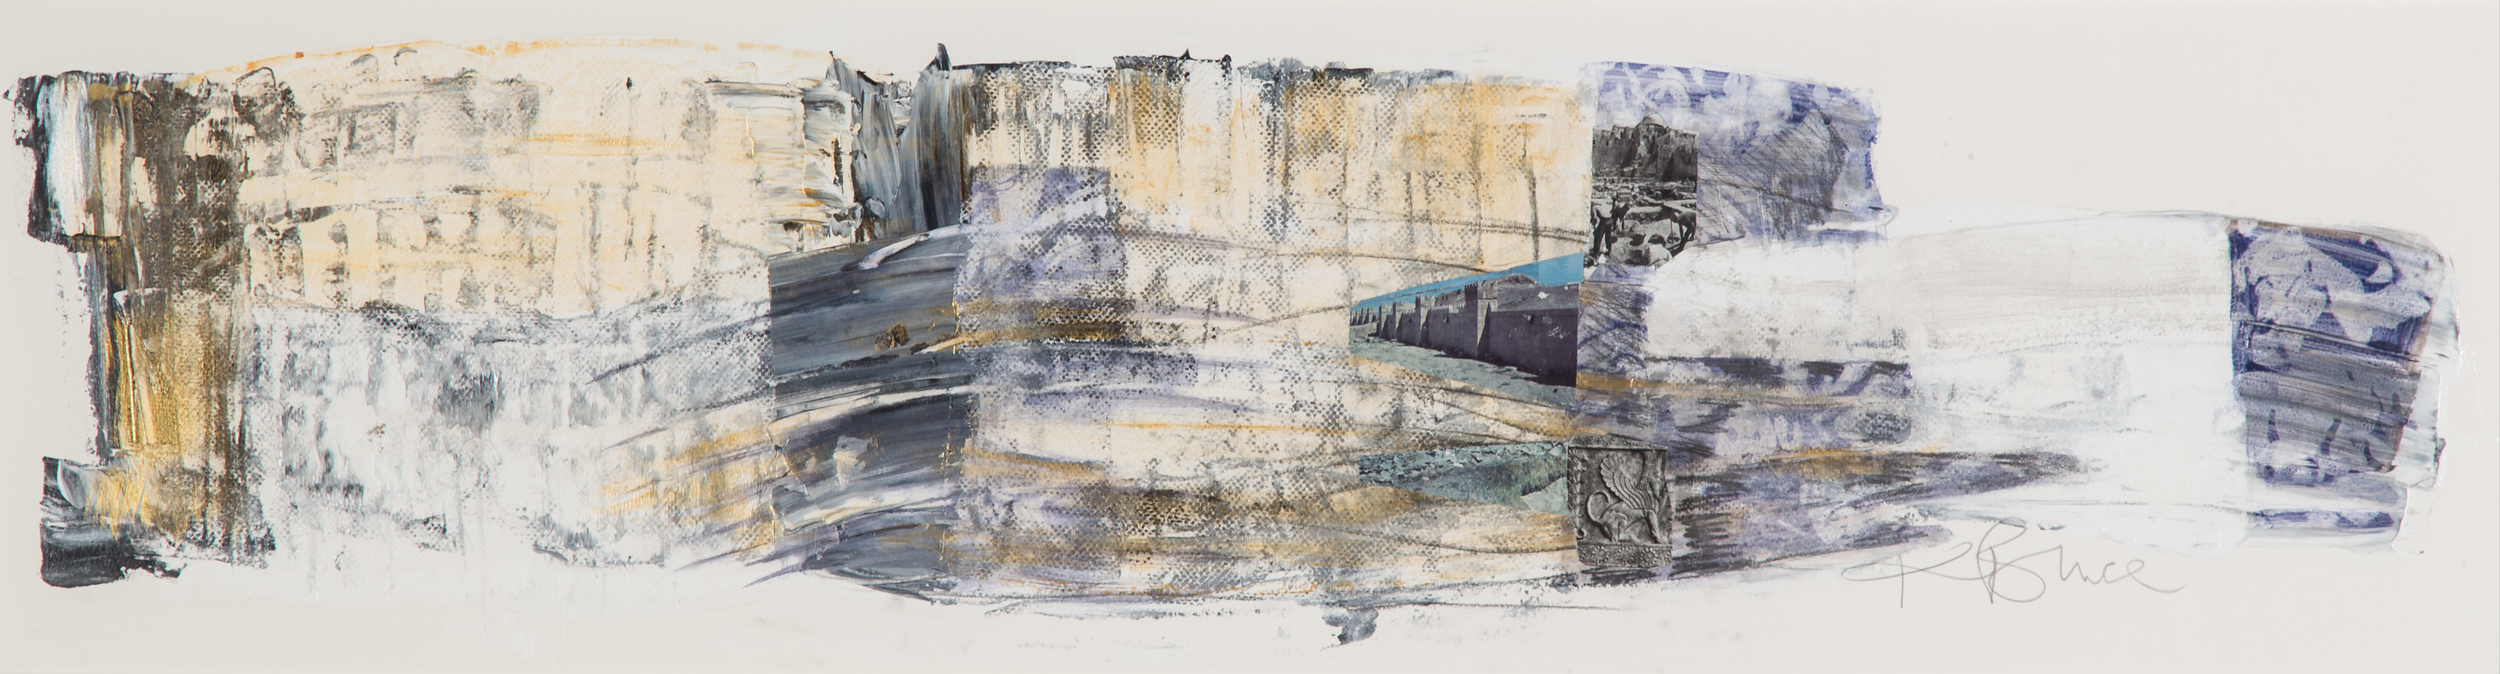 KB-065, Katharine Bruce, GhostBridge, Acrylic with Collage on Paper, 2015, 43 x 11, $2,400